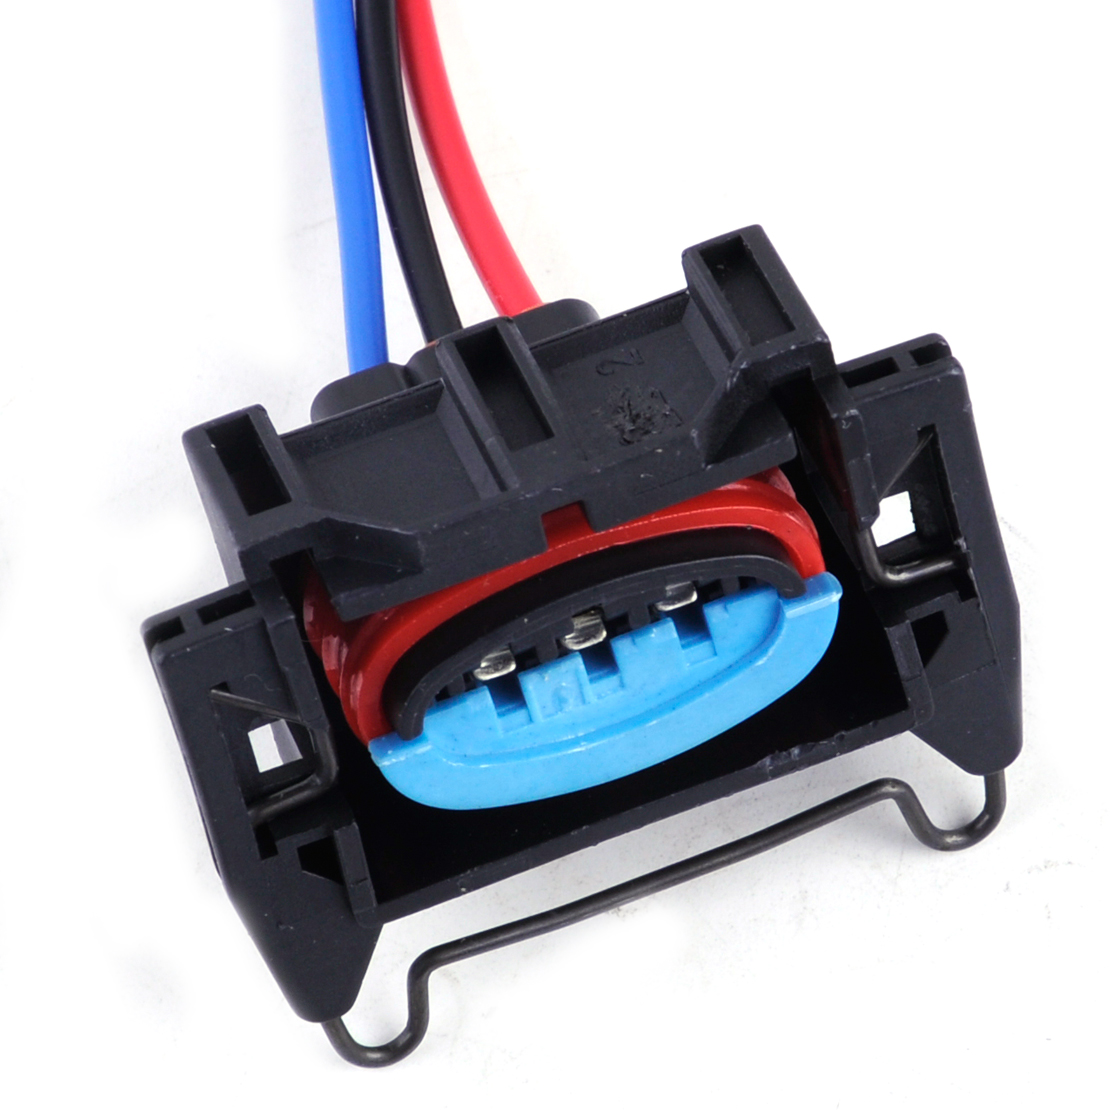 hight resolution of citall new ignition coil pack wiring harness connector 645 302 3u2z14s411tna 1p1727 57 5508 for ford focus ranger contour mazda in ignition coil from